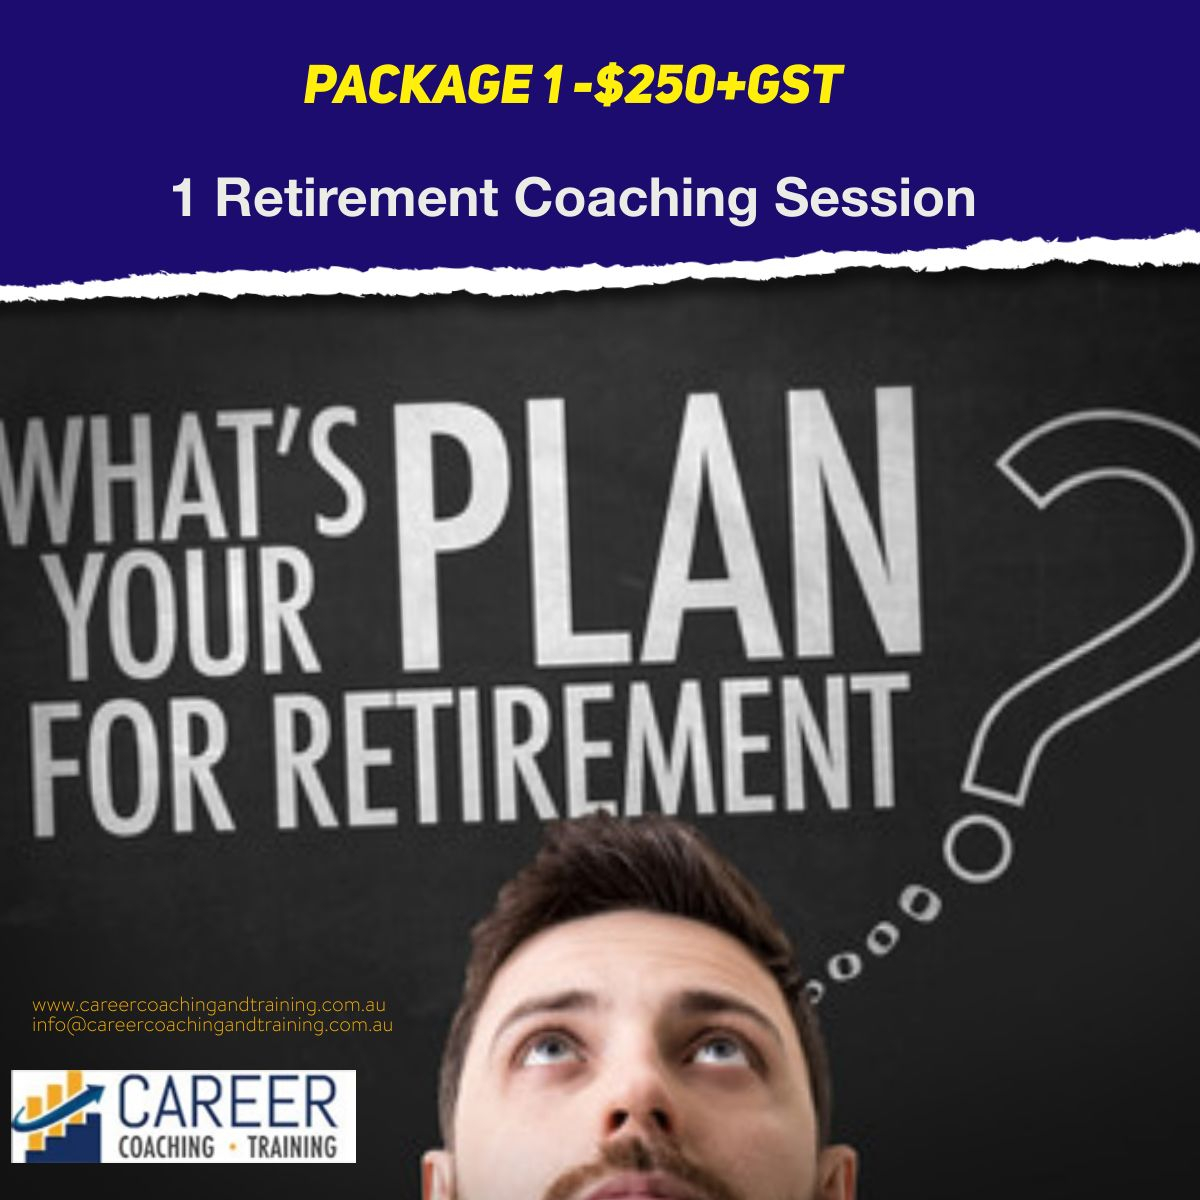 Retirement Package 1